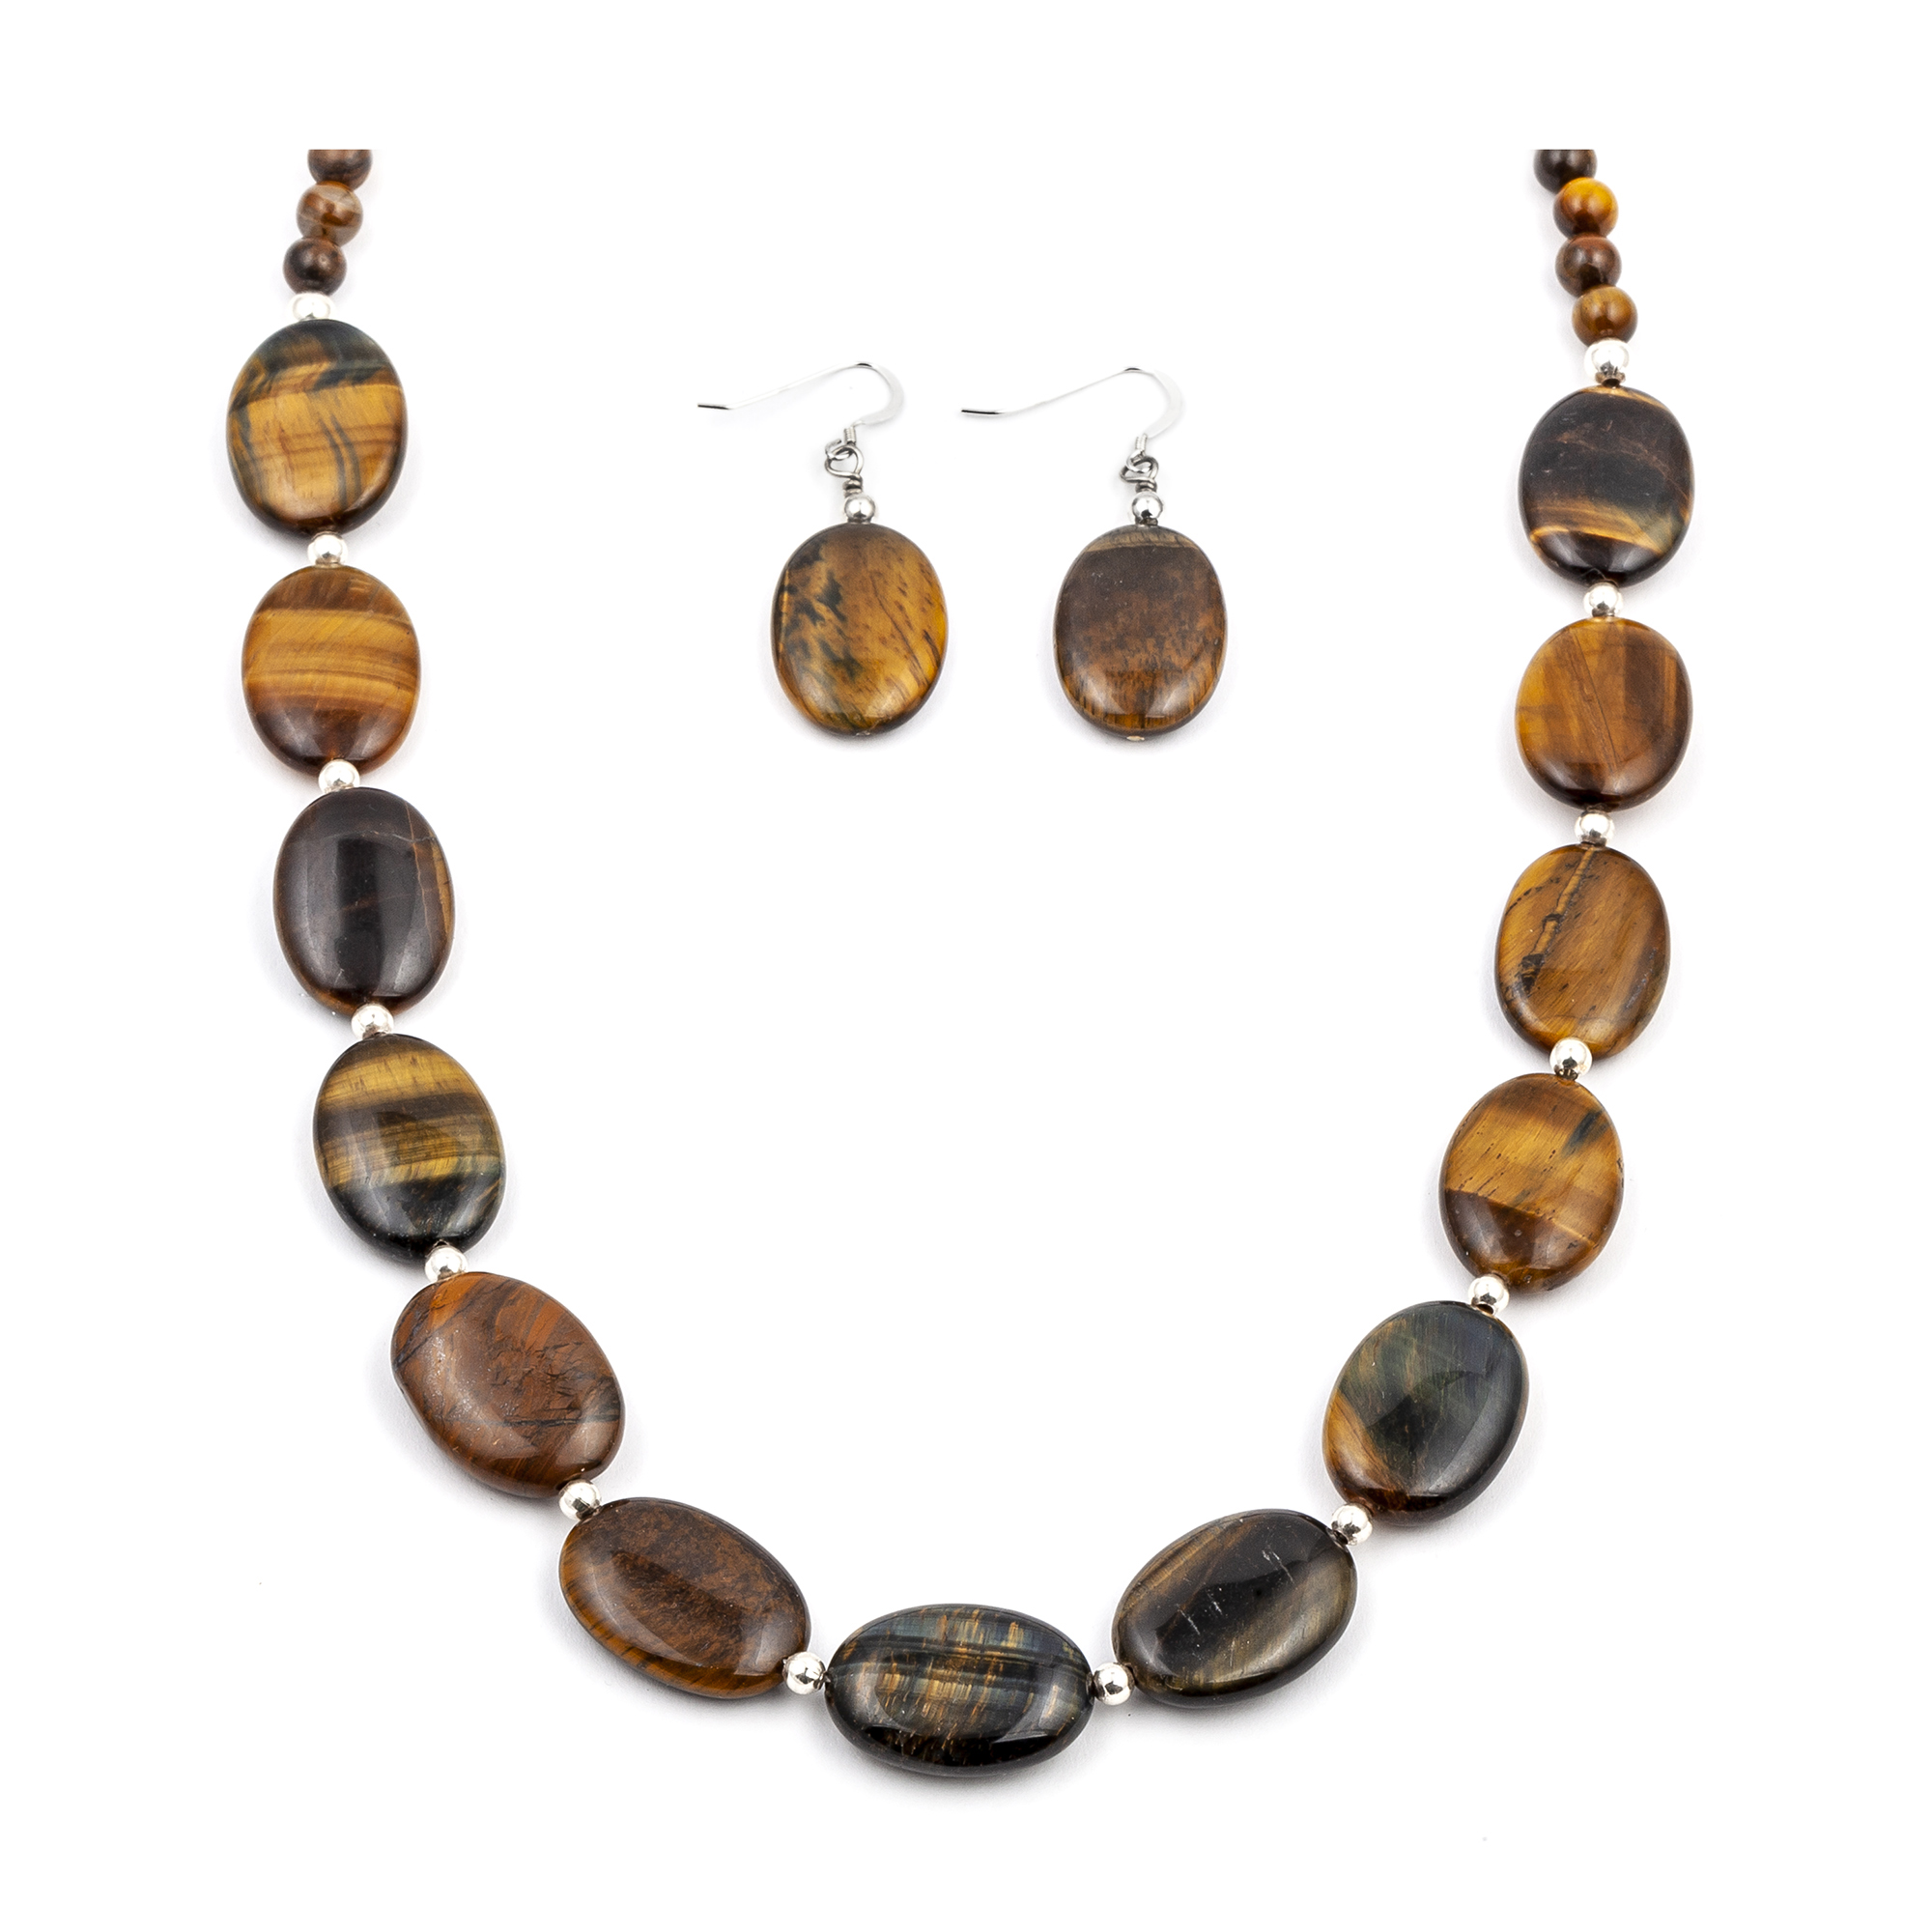 Certified Authentic Navajo Native American Natural Tigers Eye Necklace Earrings Set 24547-18331 Sets NB180602235911 24547-18331 (by LomaSiiva)